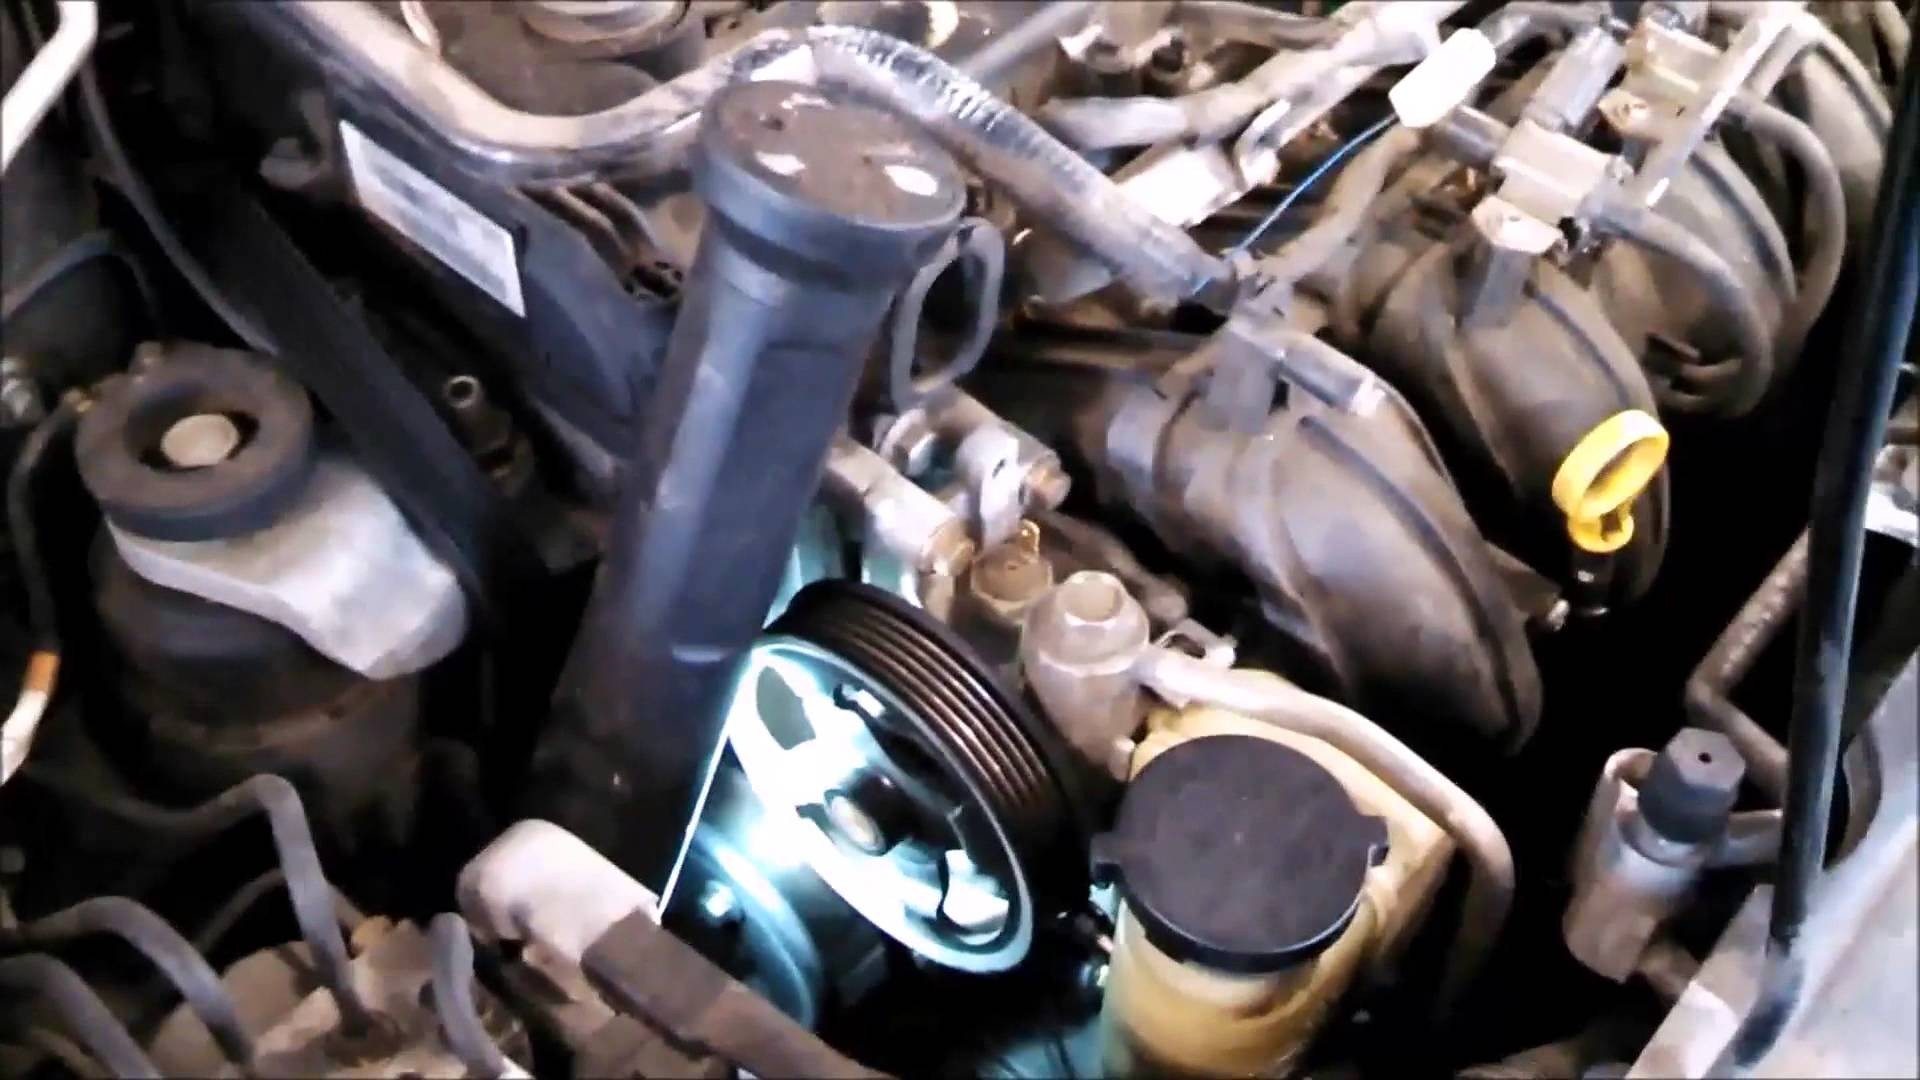 Diagram Of Car thermostat thermostat Replacement 2005 Mazda 6 2 3l Install Remove Replace How Of Diagram Of Car thermostat